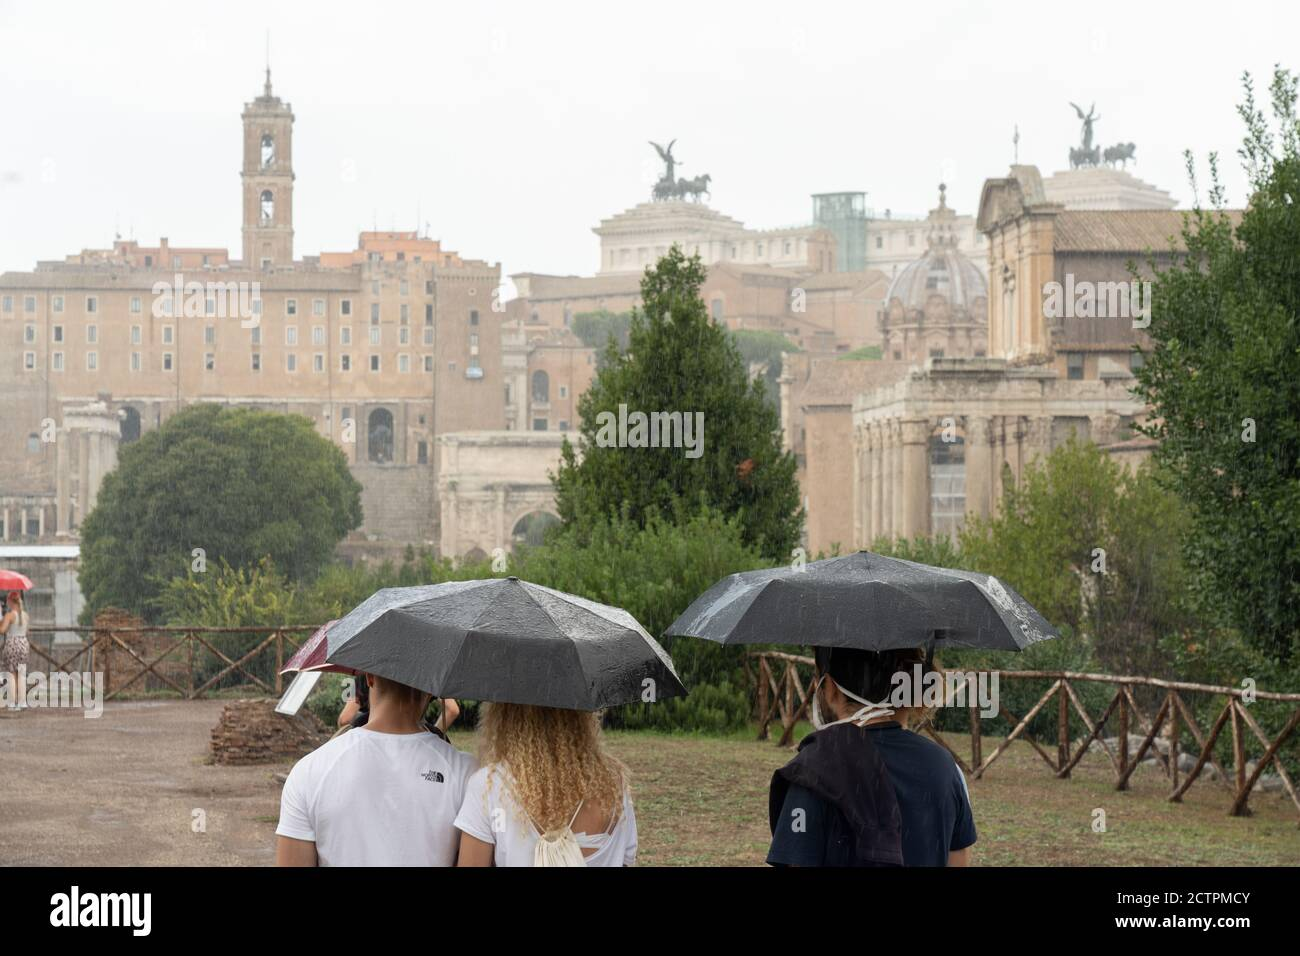 Rome, Italy. 24th September, 2020. Italy Weather: Tourists shelter from heavy rain in the Roman Forum in Rome, Italy. Photo: Roger Garfield/Alamy Live News Stock Photo